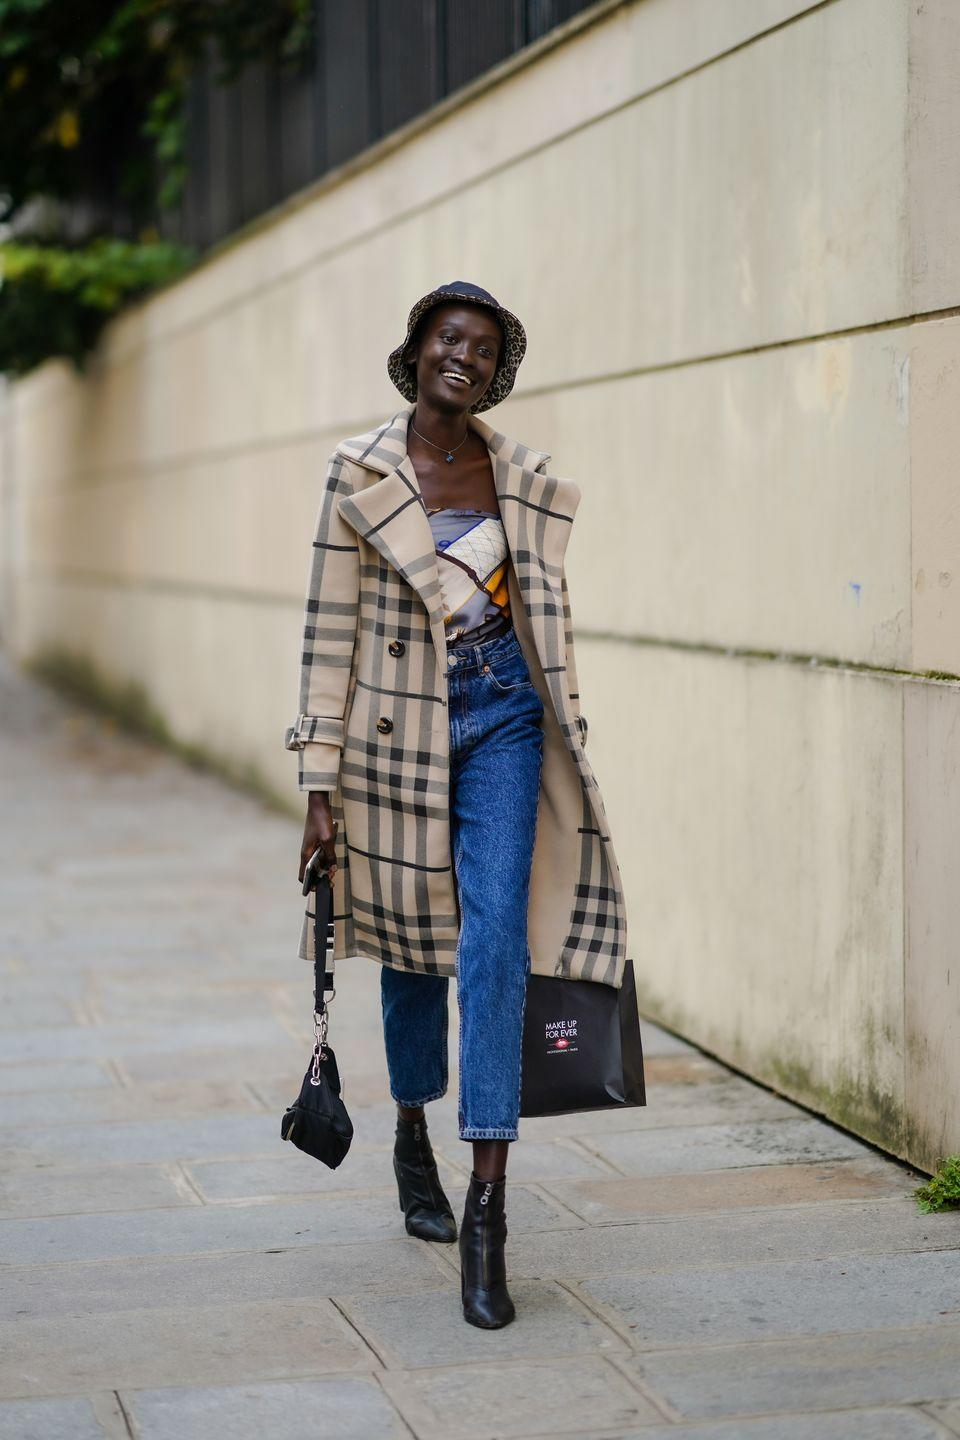 <p>They say your head is the first place heat leaves your body, so don't pack away your beanies or berets just yet. For a more spring-friendly option, give the bucket hat a try.</p>